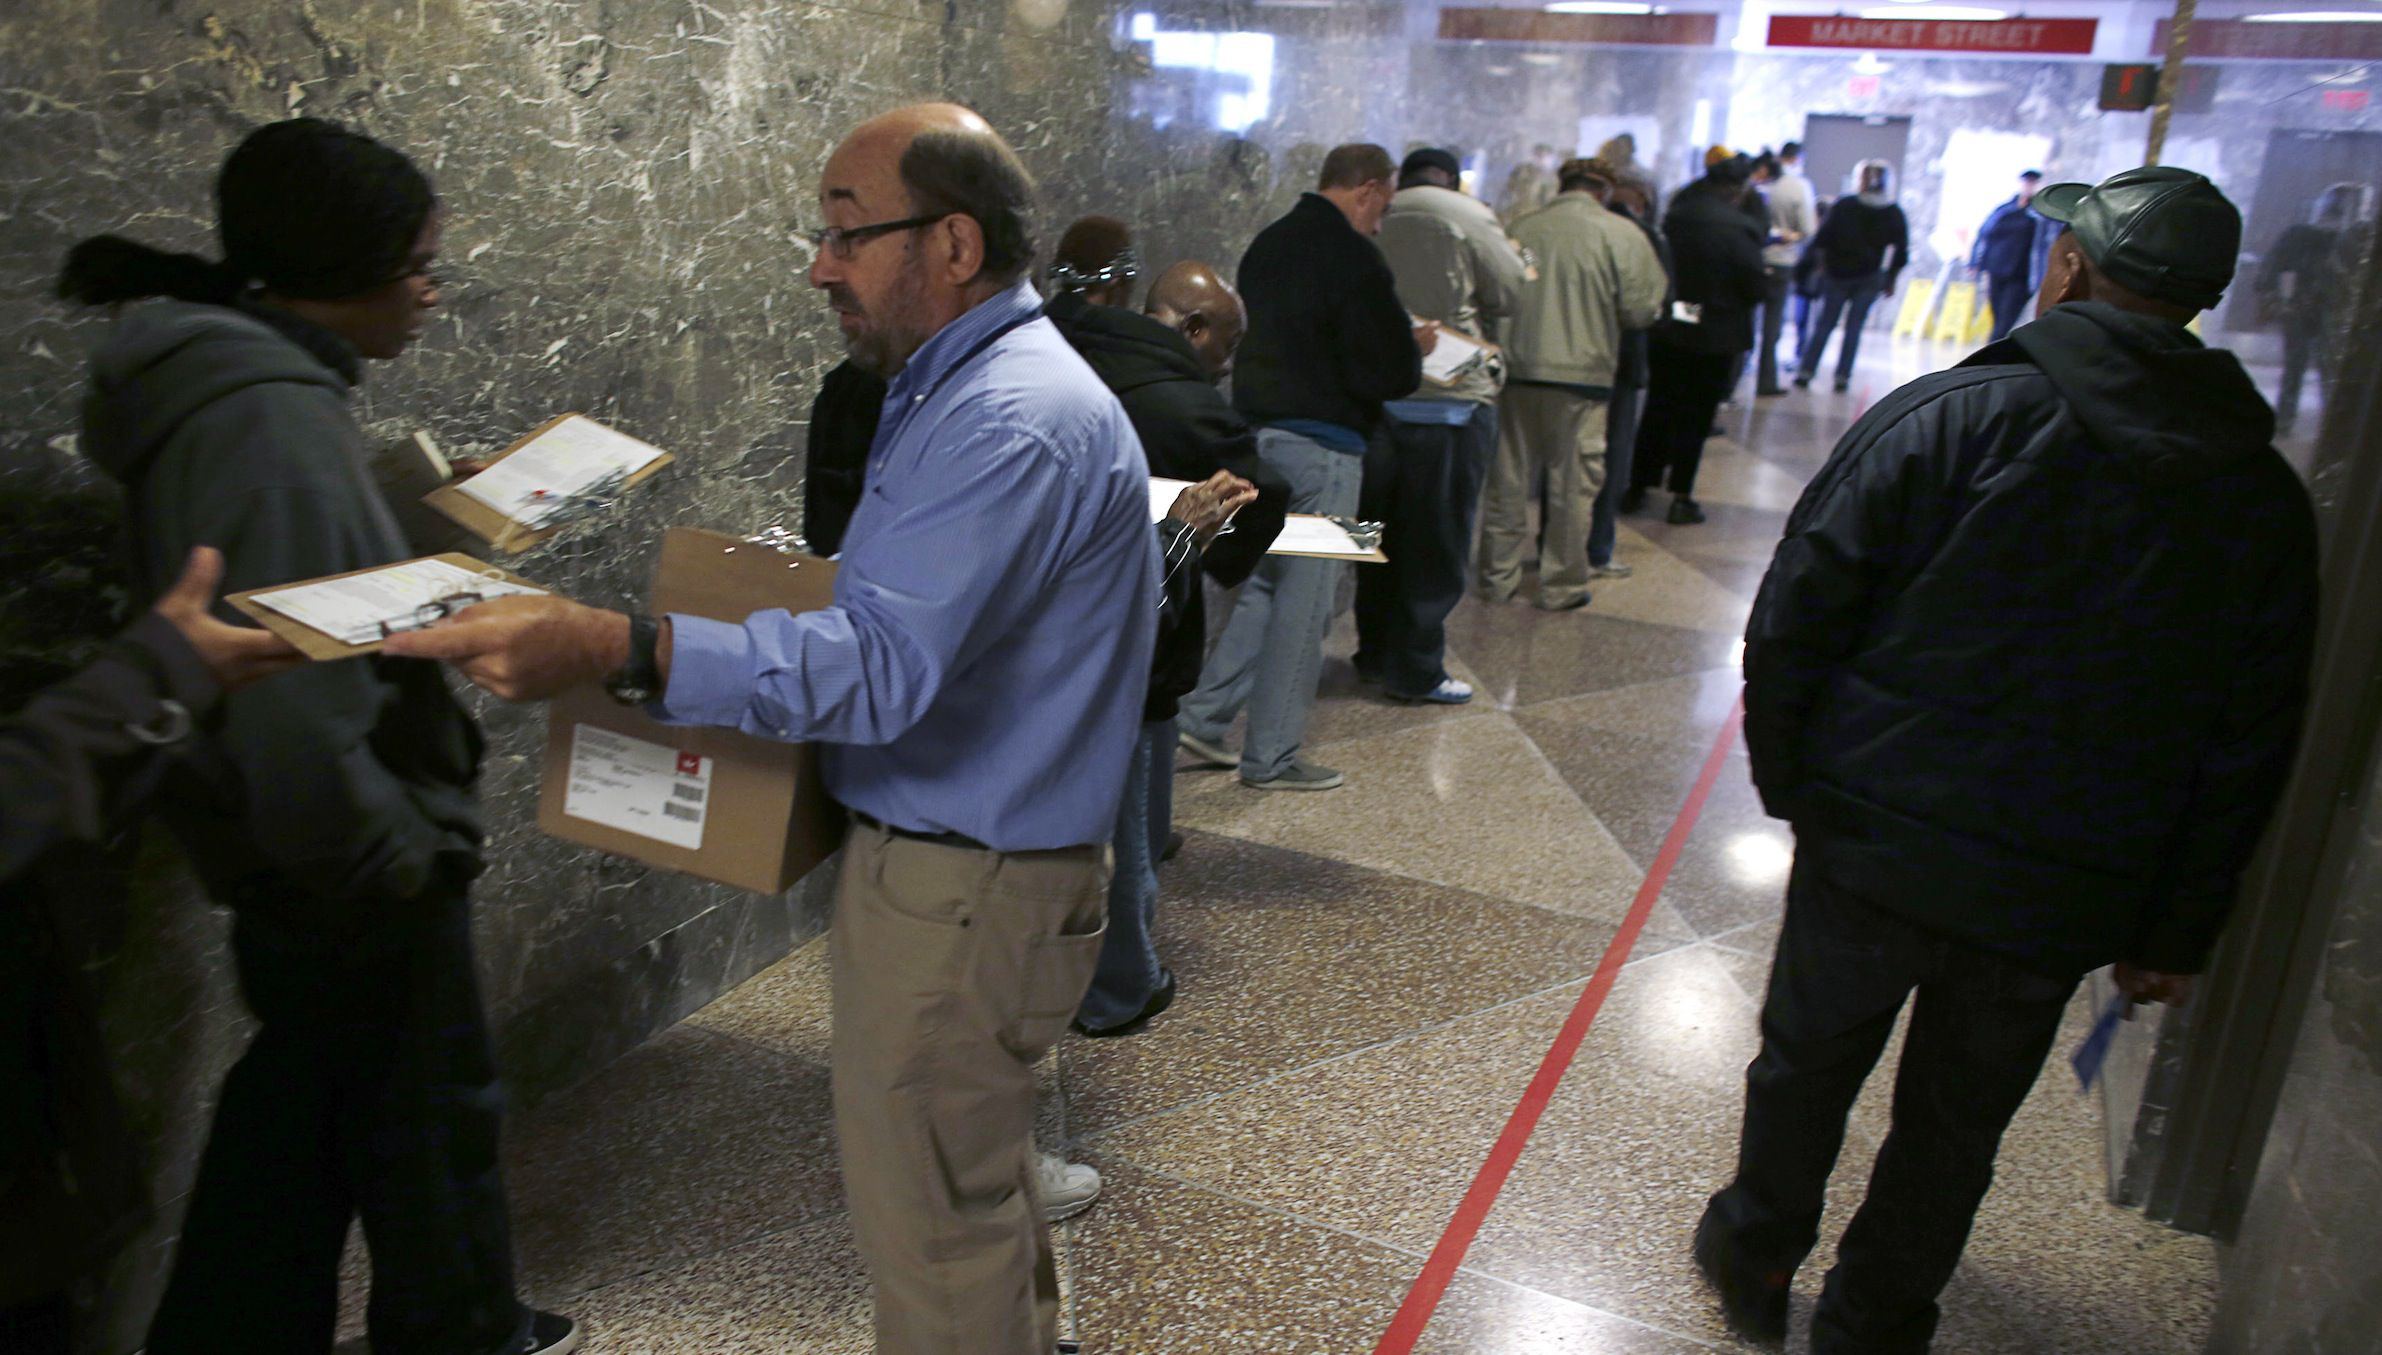 An election worker (in blue) hands out clipboards to residents waiting in line during the lunch hour to cast their early votes in the upcoming U.S. presidential elections, at the Milwaukee Municipal Building in Milwaukee, Wisconsin October 29, 2012. REUTERS/Darren Hauck (UNITED STATES - Tags: POLITICS ELECTIONS USA PRESIDENTIAL ELECTION) - RTR39R2I